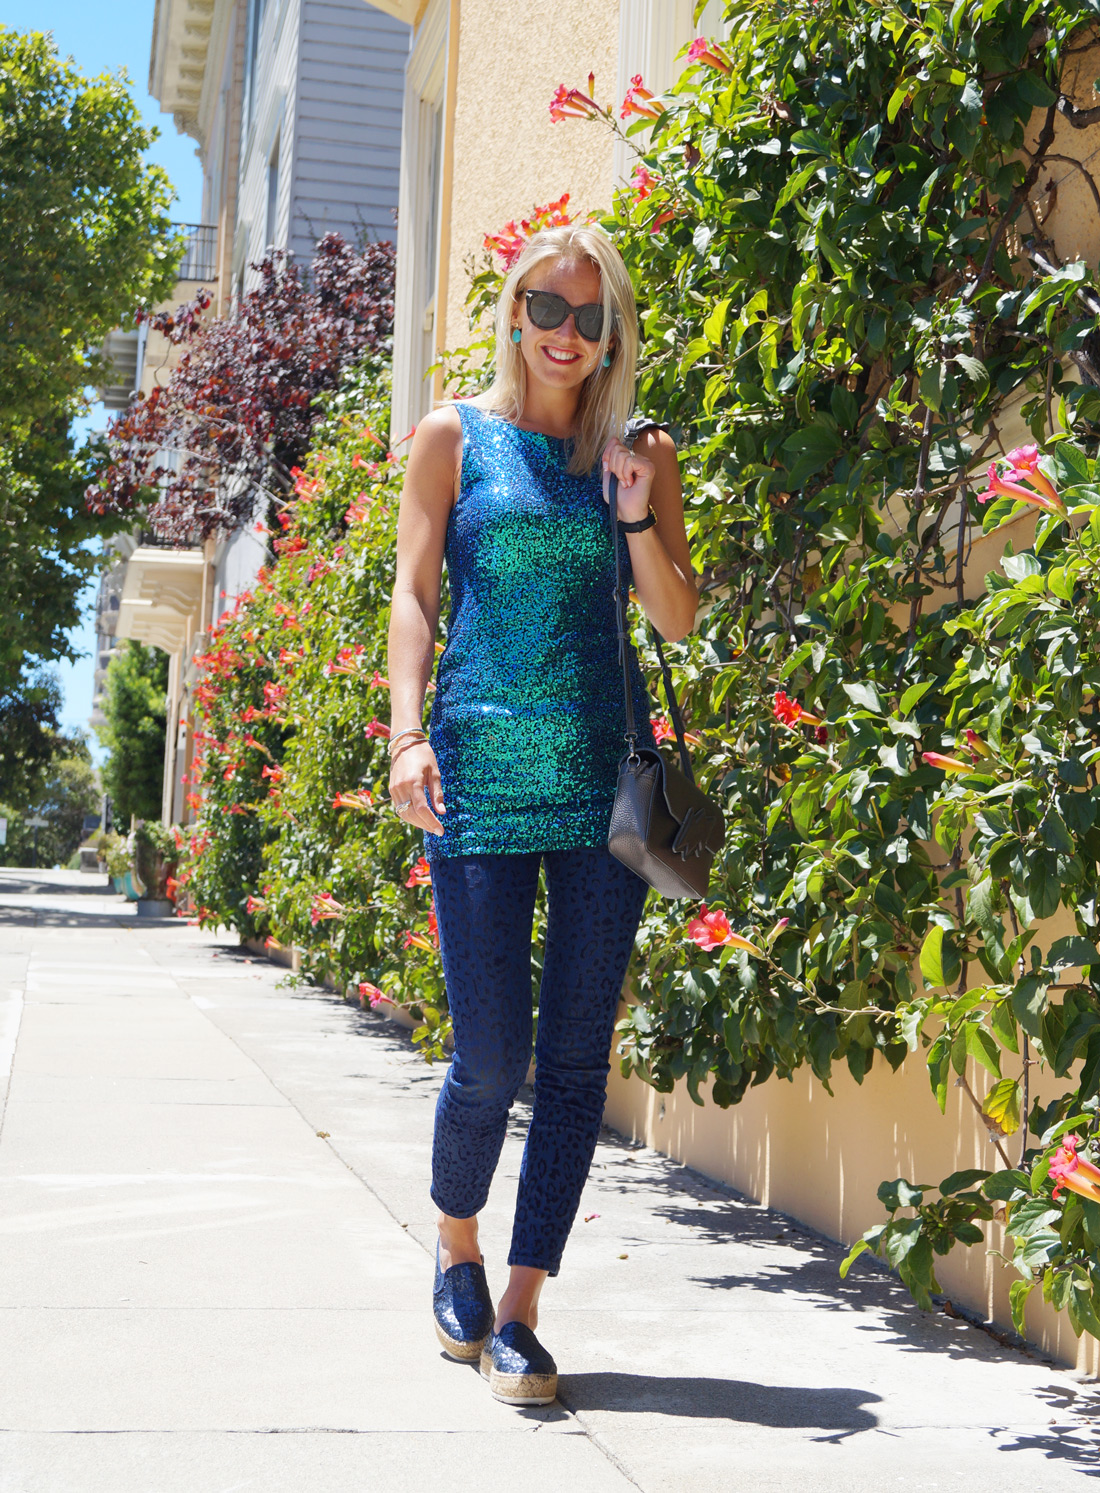 bag-at-you-fashion-blog-san-francisco-summer-look